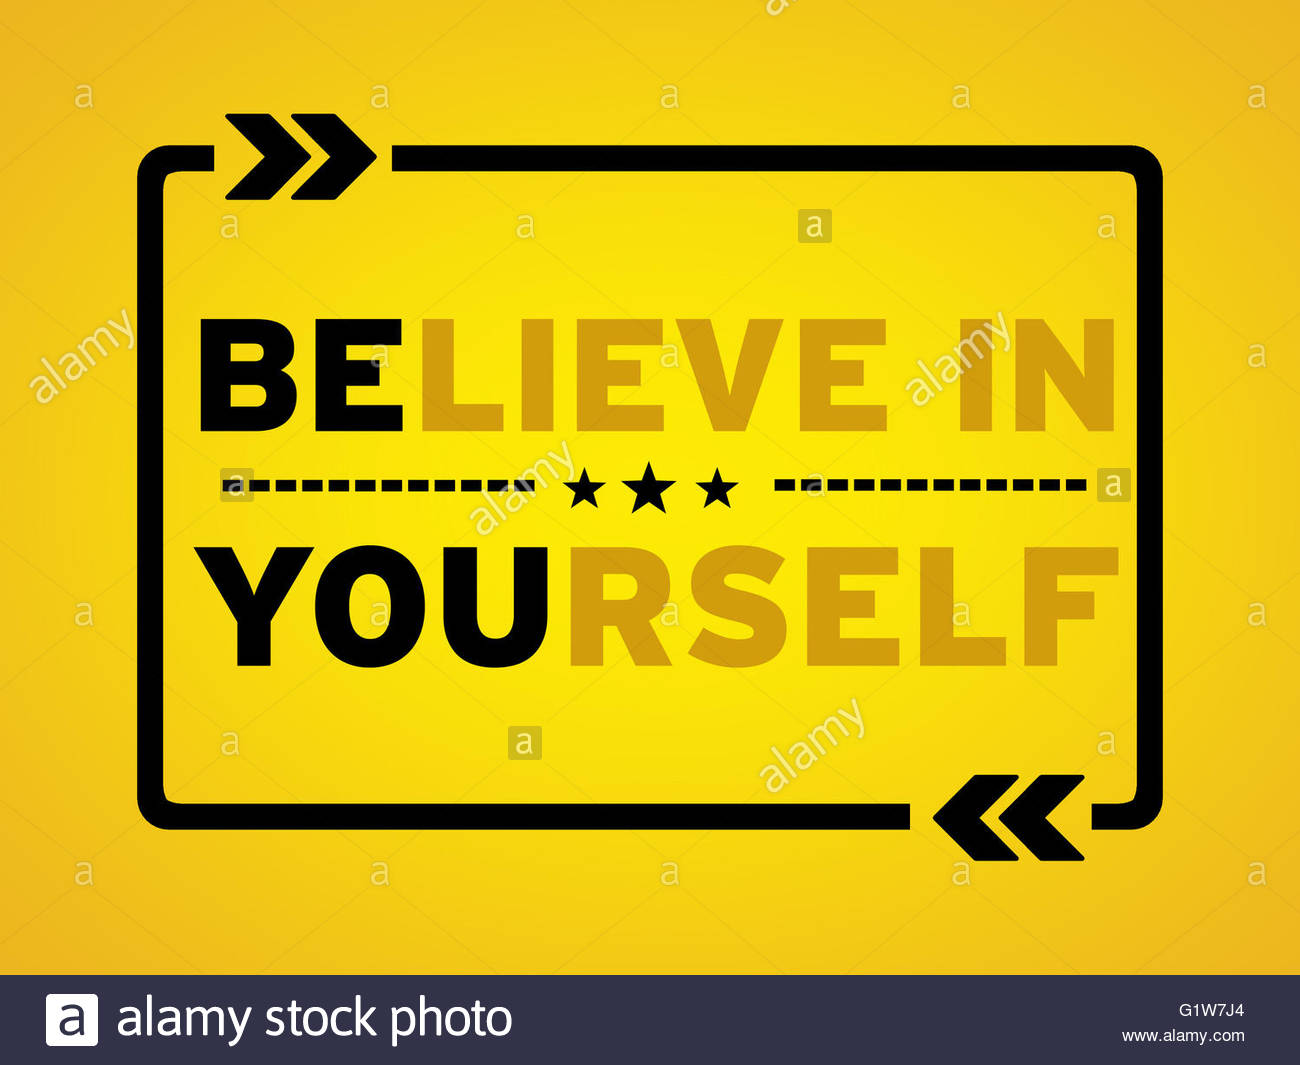 Believe in yourself - Stock Image